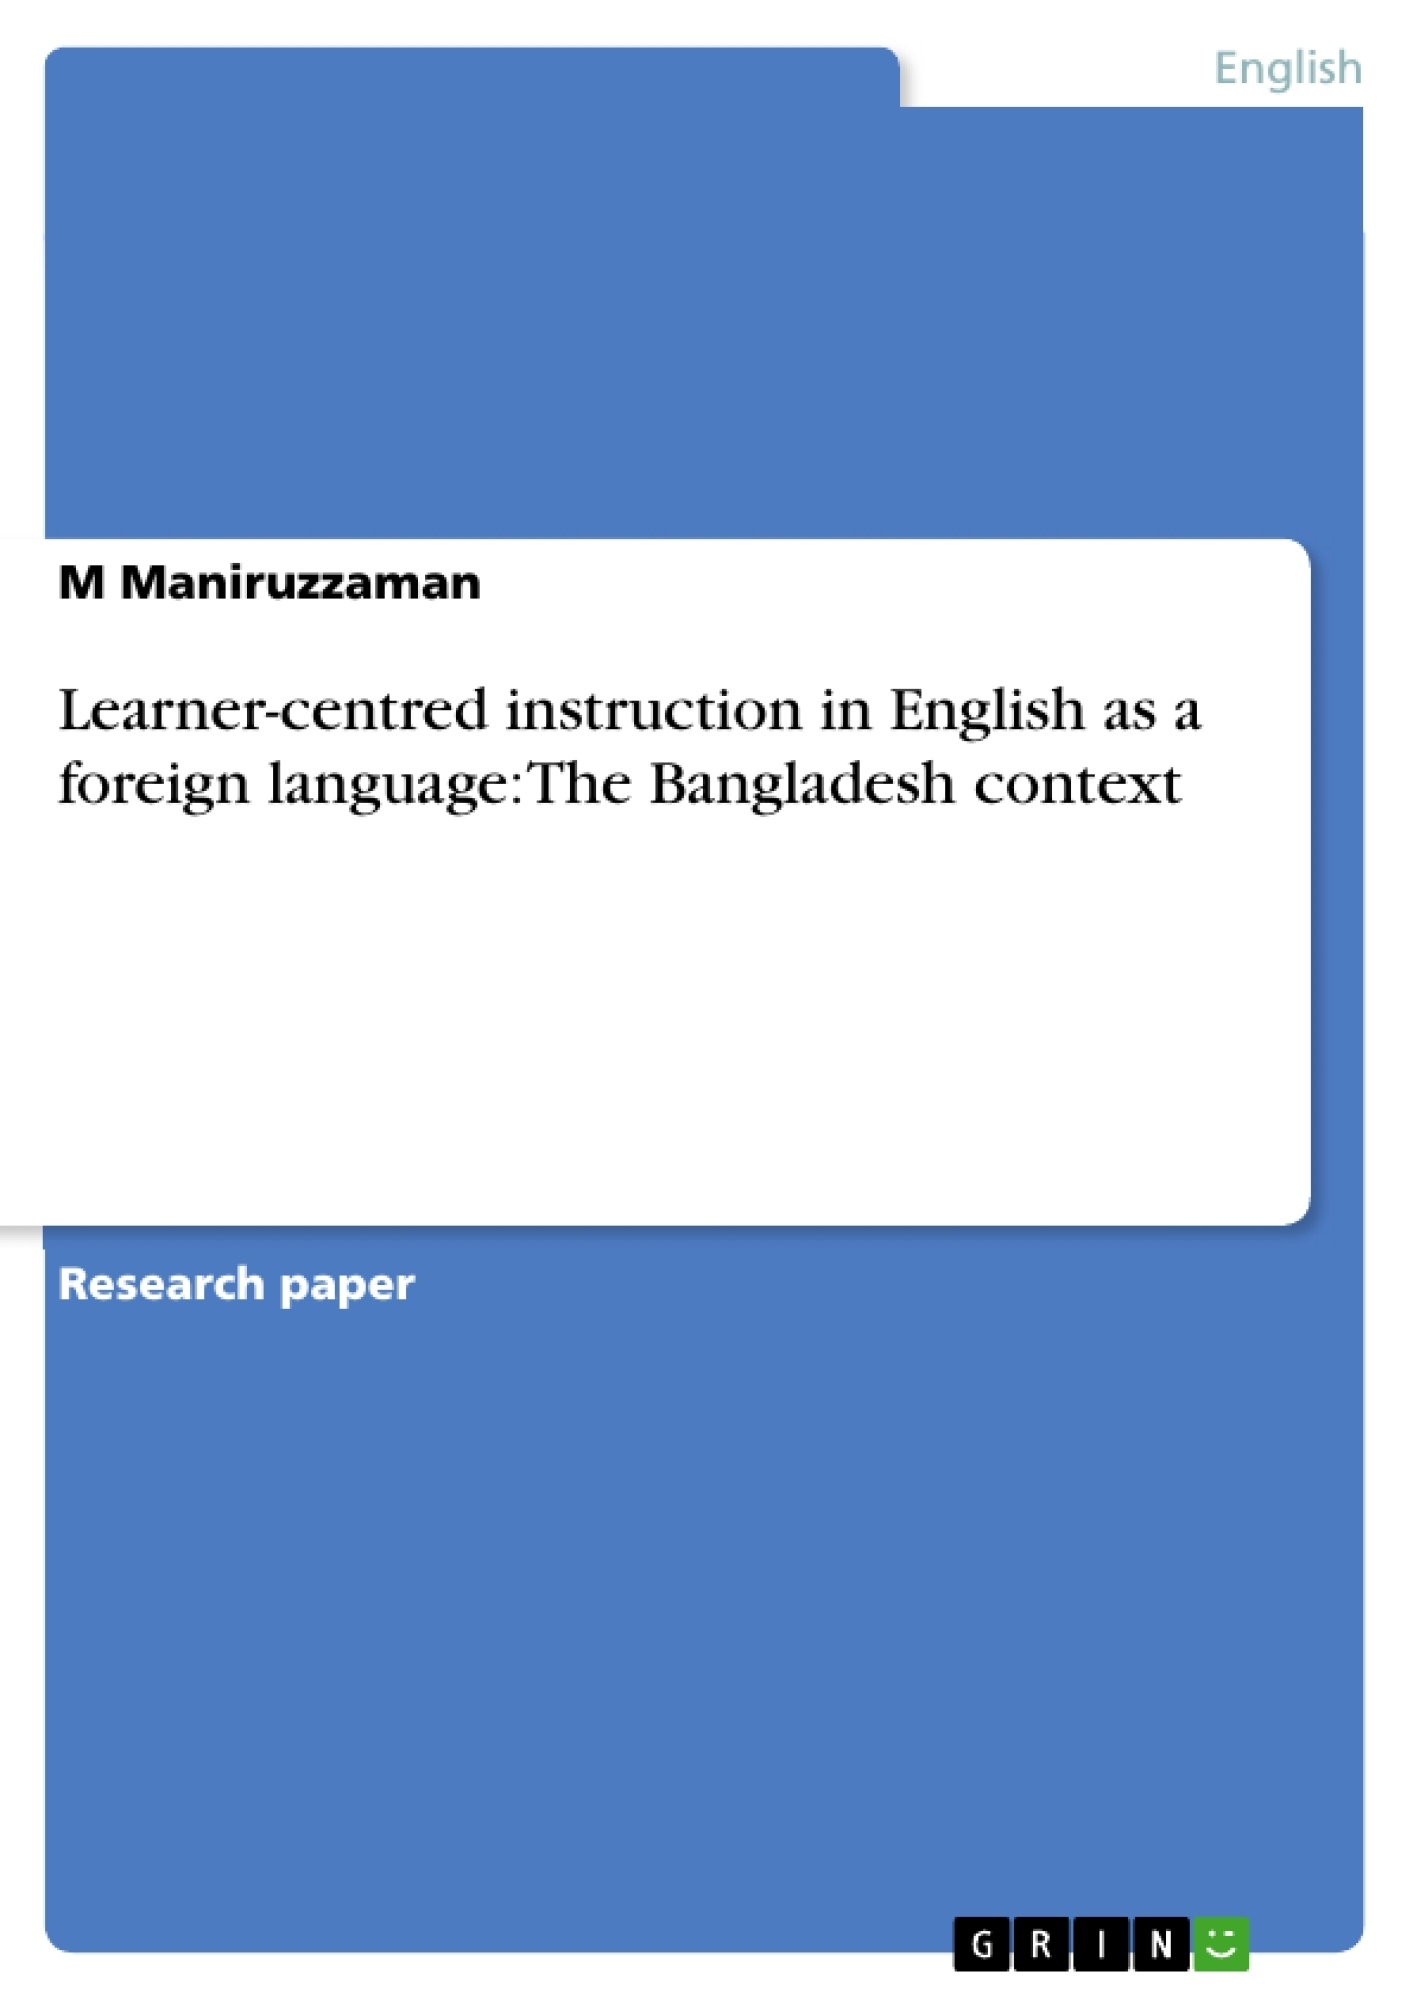 Title: Learner-centred instruction in English as a foreign language: The Bangladesh context